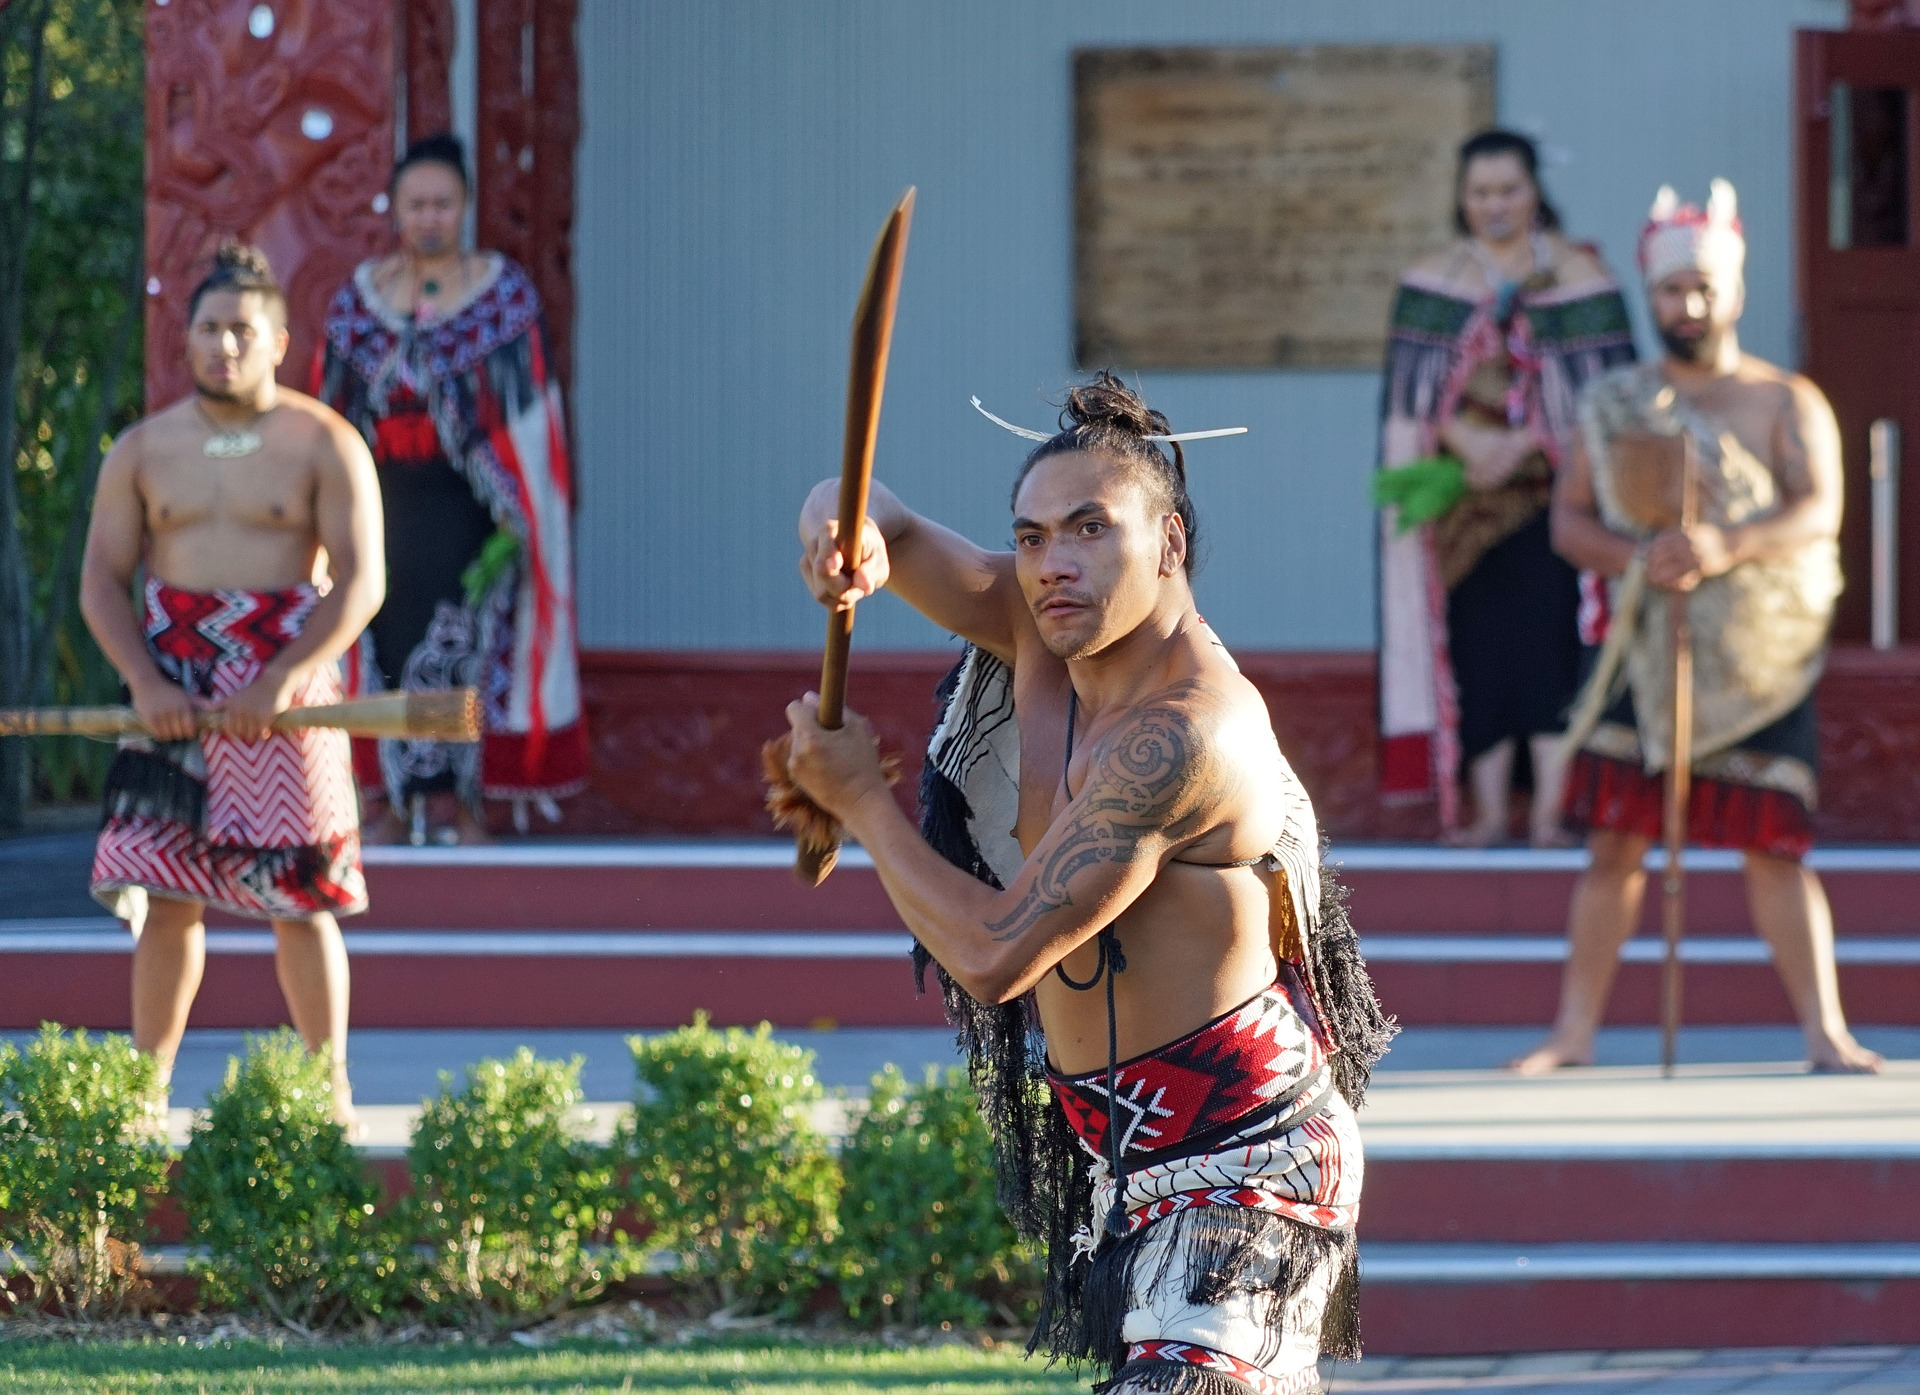 A Maori man performs during a  traditional ceremony in New Zealand.